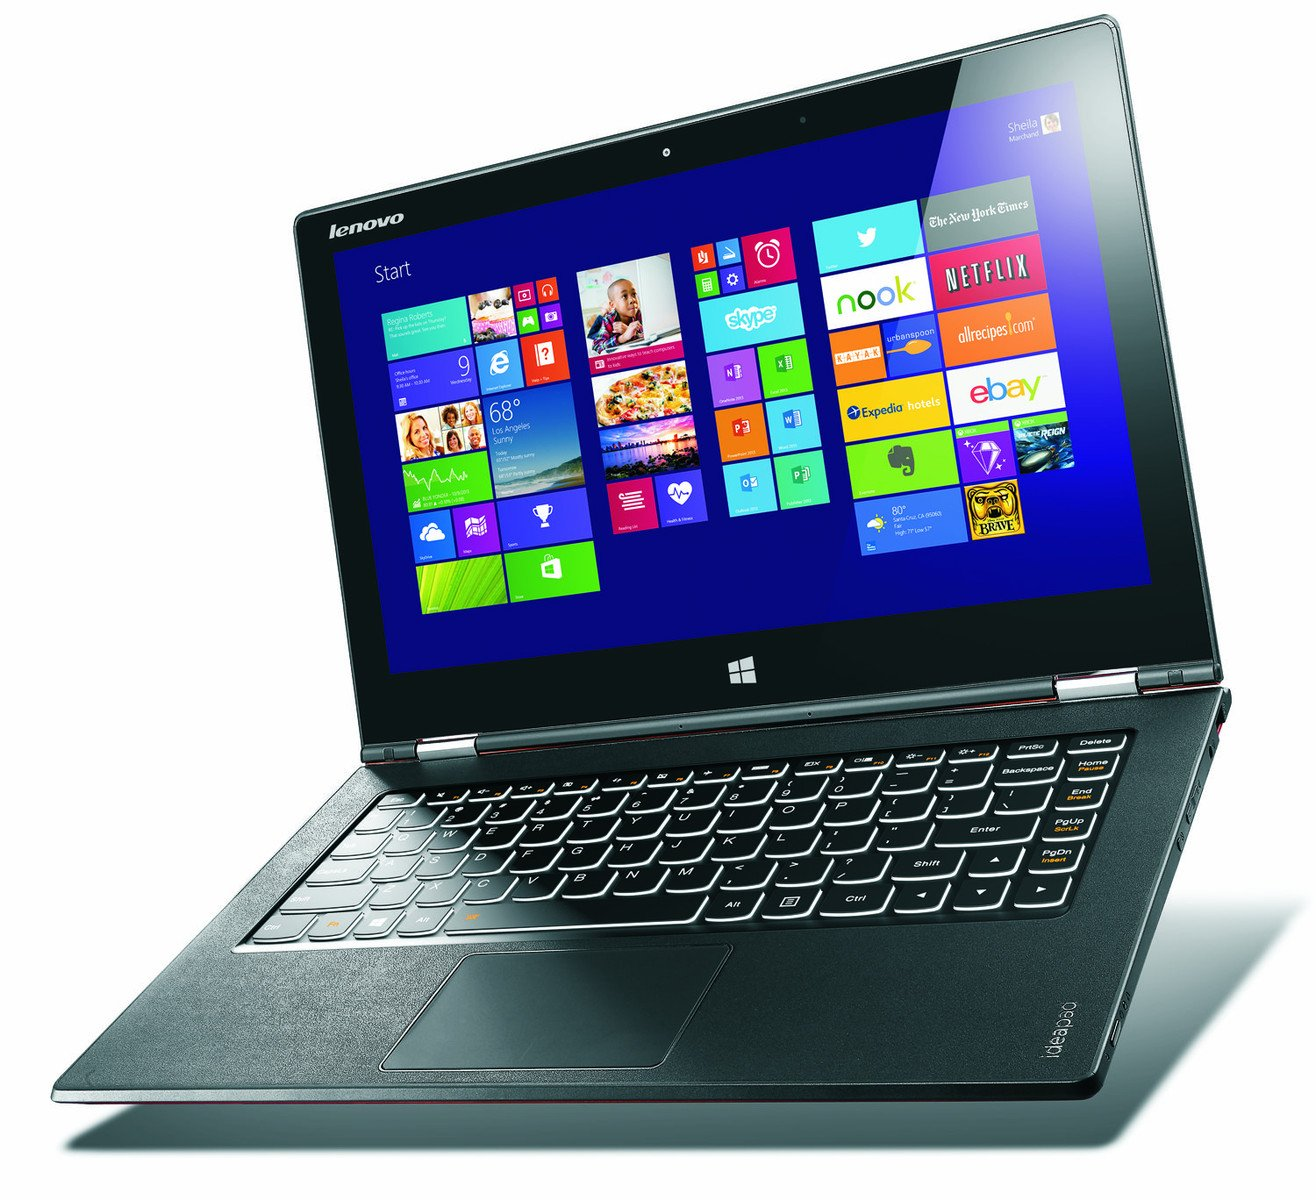 Amazon.com: enovo Yoga 2 Pro Ultrabook- Intel Core Haswell ...